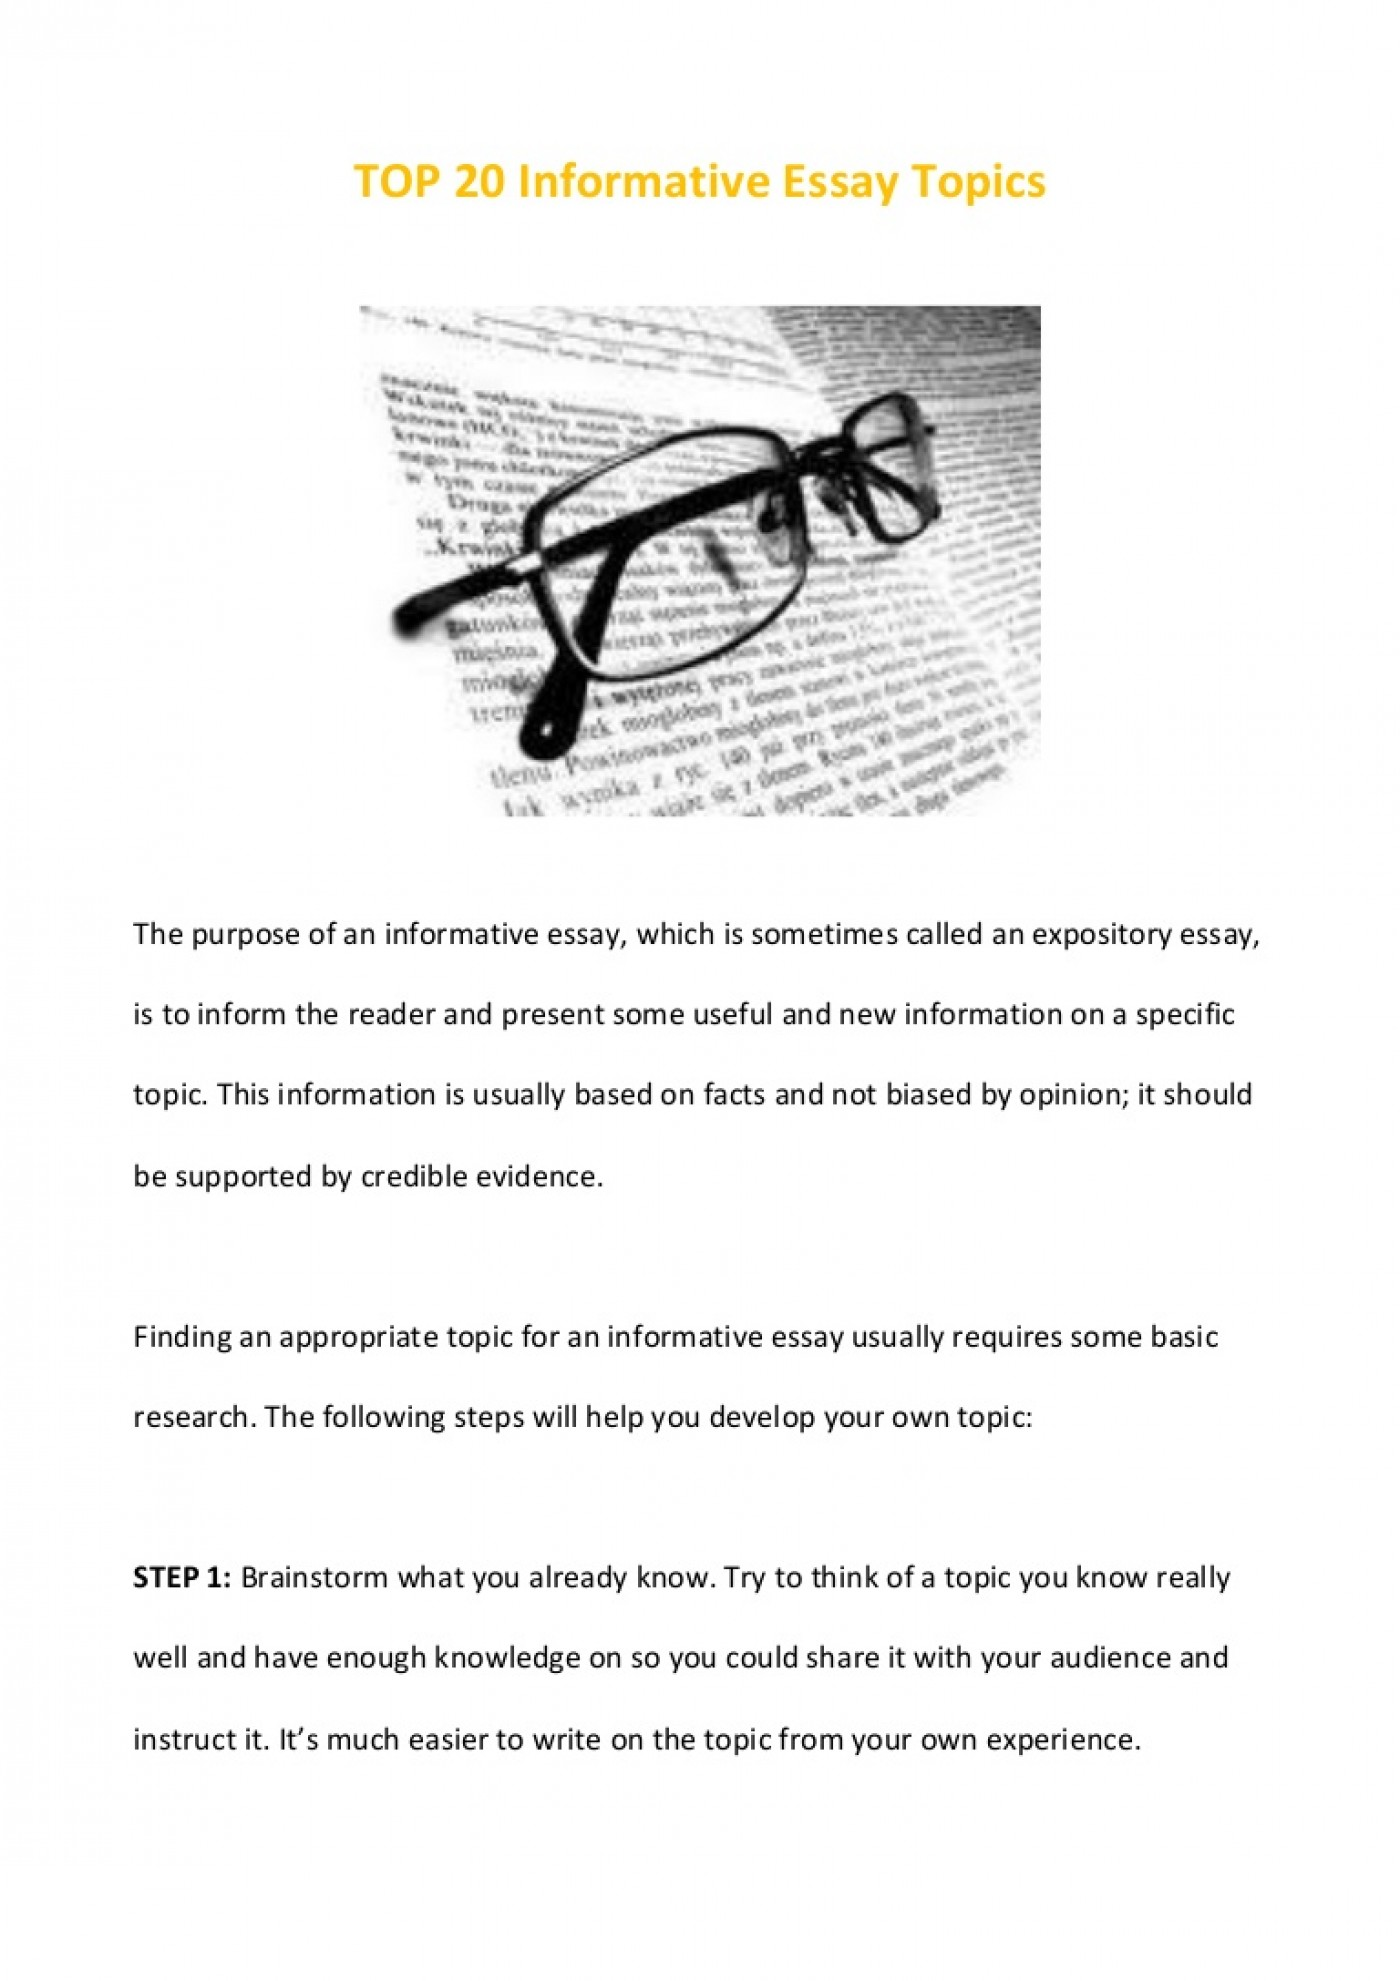 011 Essay Example Top20informativeessaytopics Phpapp02 Thumbnail Informative Remarkable Topics Expository For Secondary School 4th Grade 5th 1400